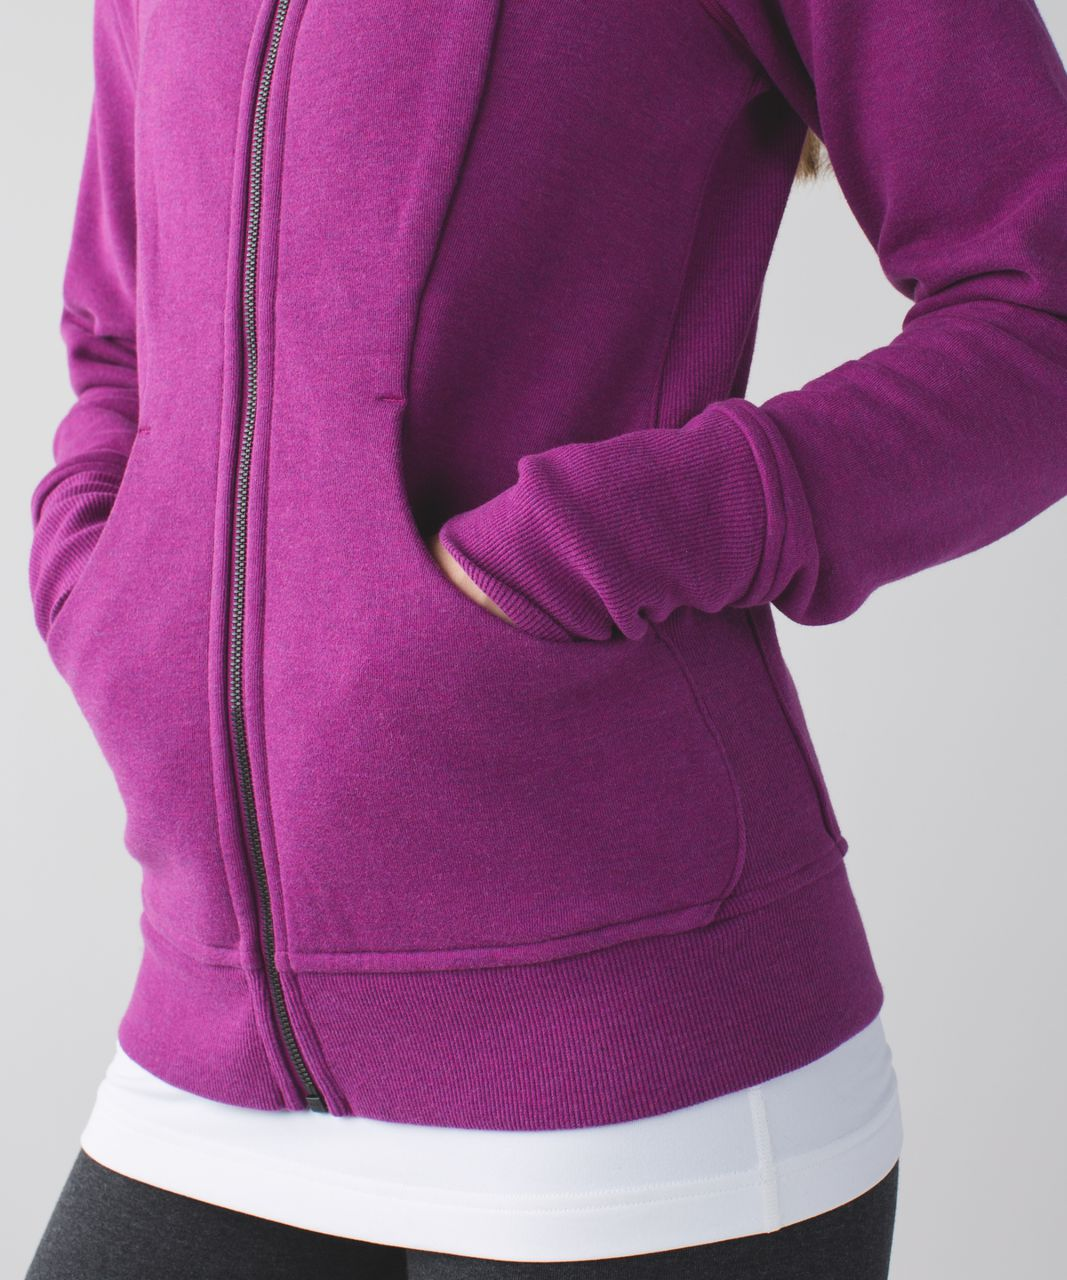 Lululemon Scuba Hoodie III (First Release) - Heathered Regal Plum